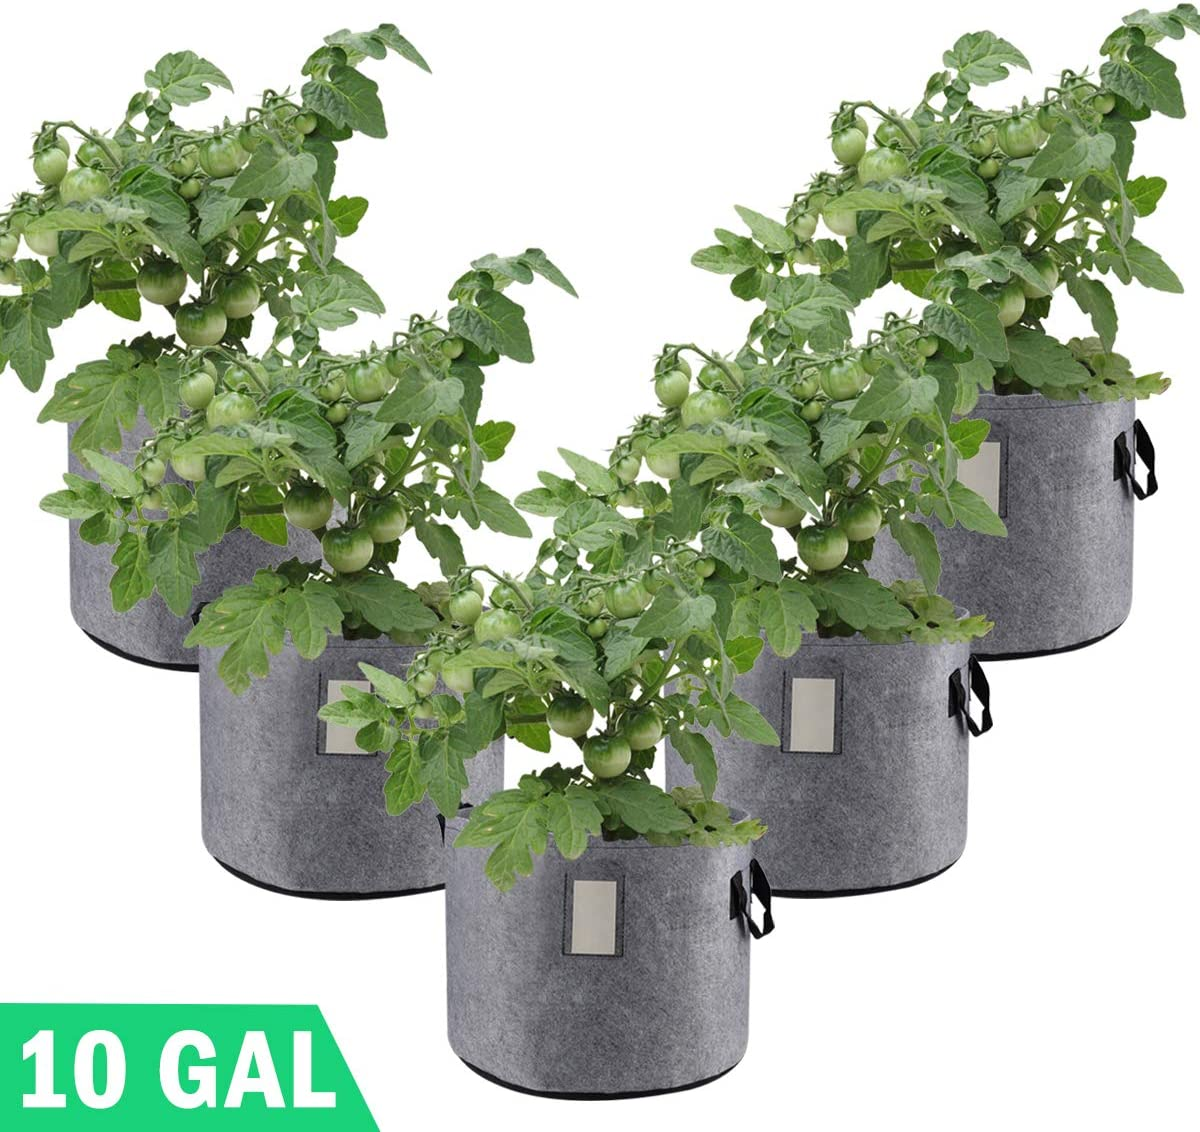 Grow Bags 10 Gallon Garden Planting Bag Aeration Fabric Pot with Handles for Planter 5 Pack